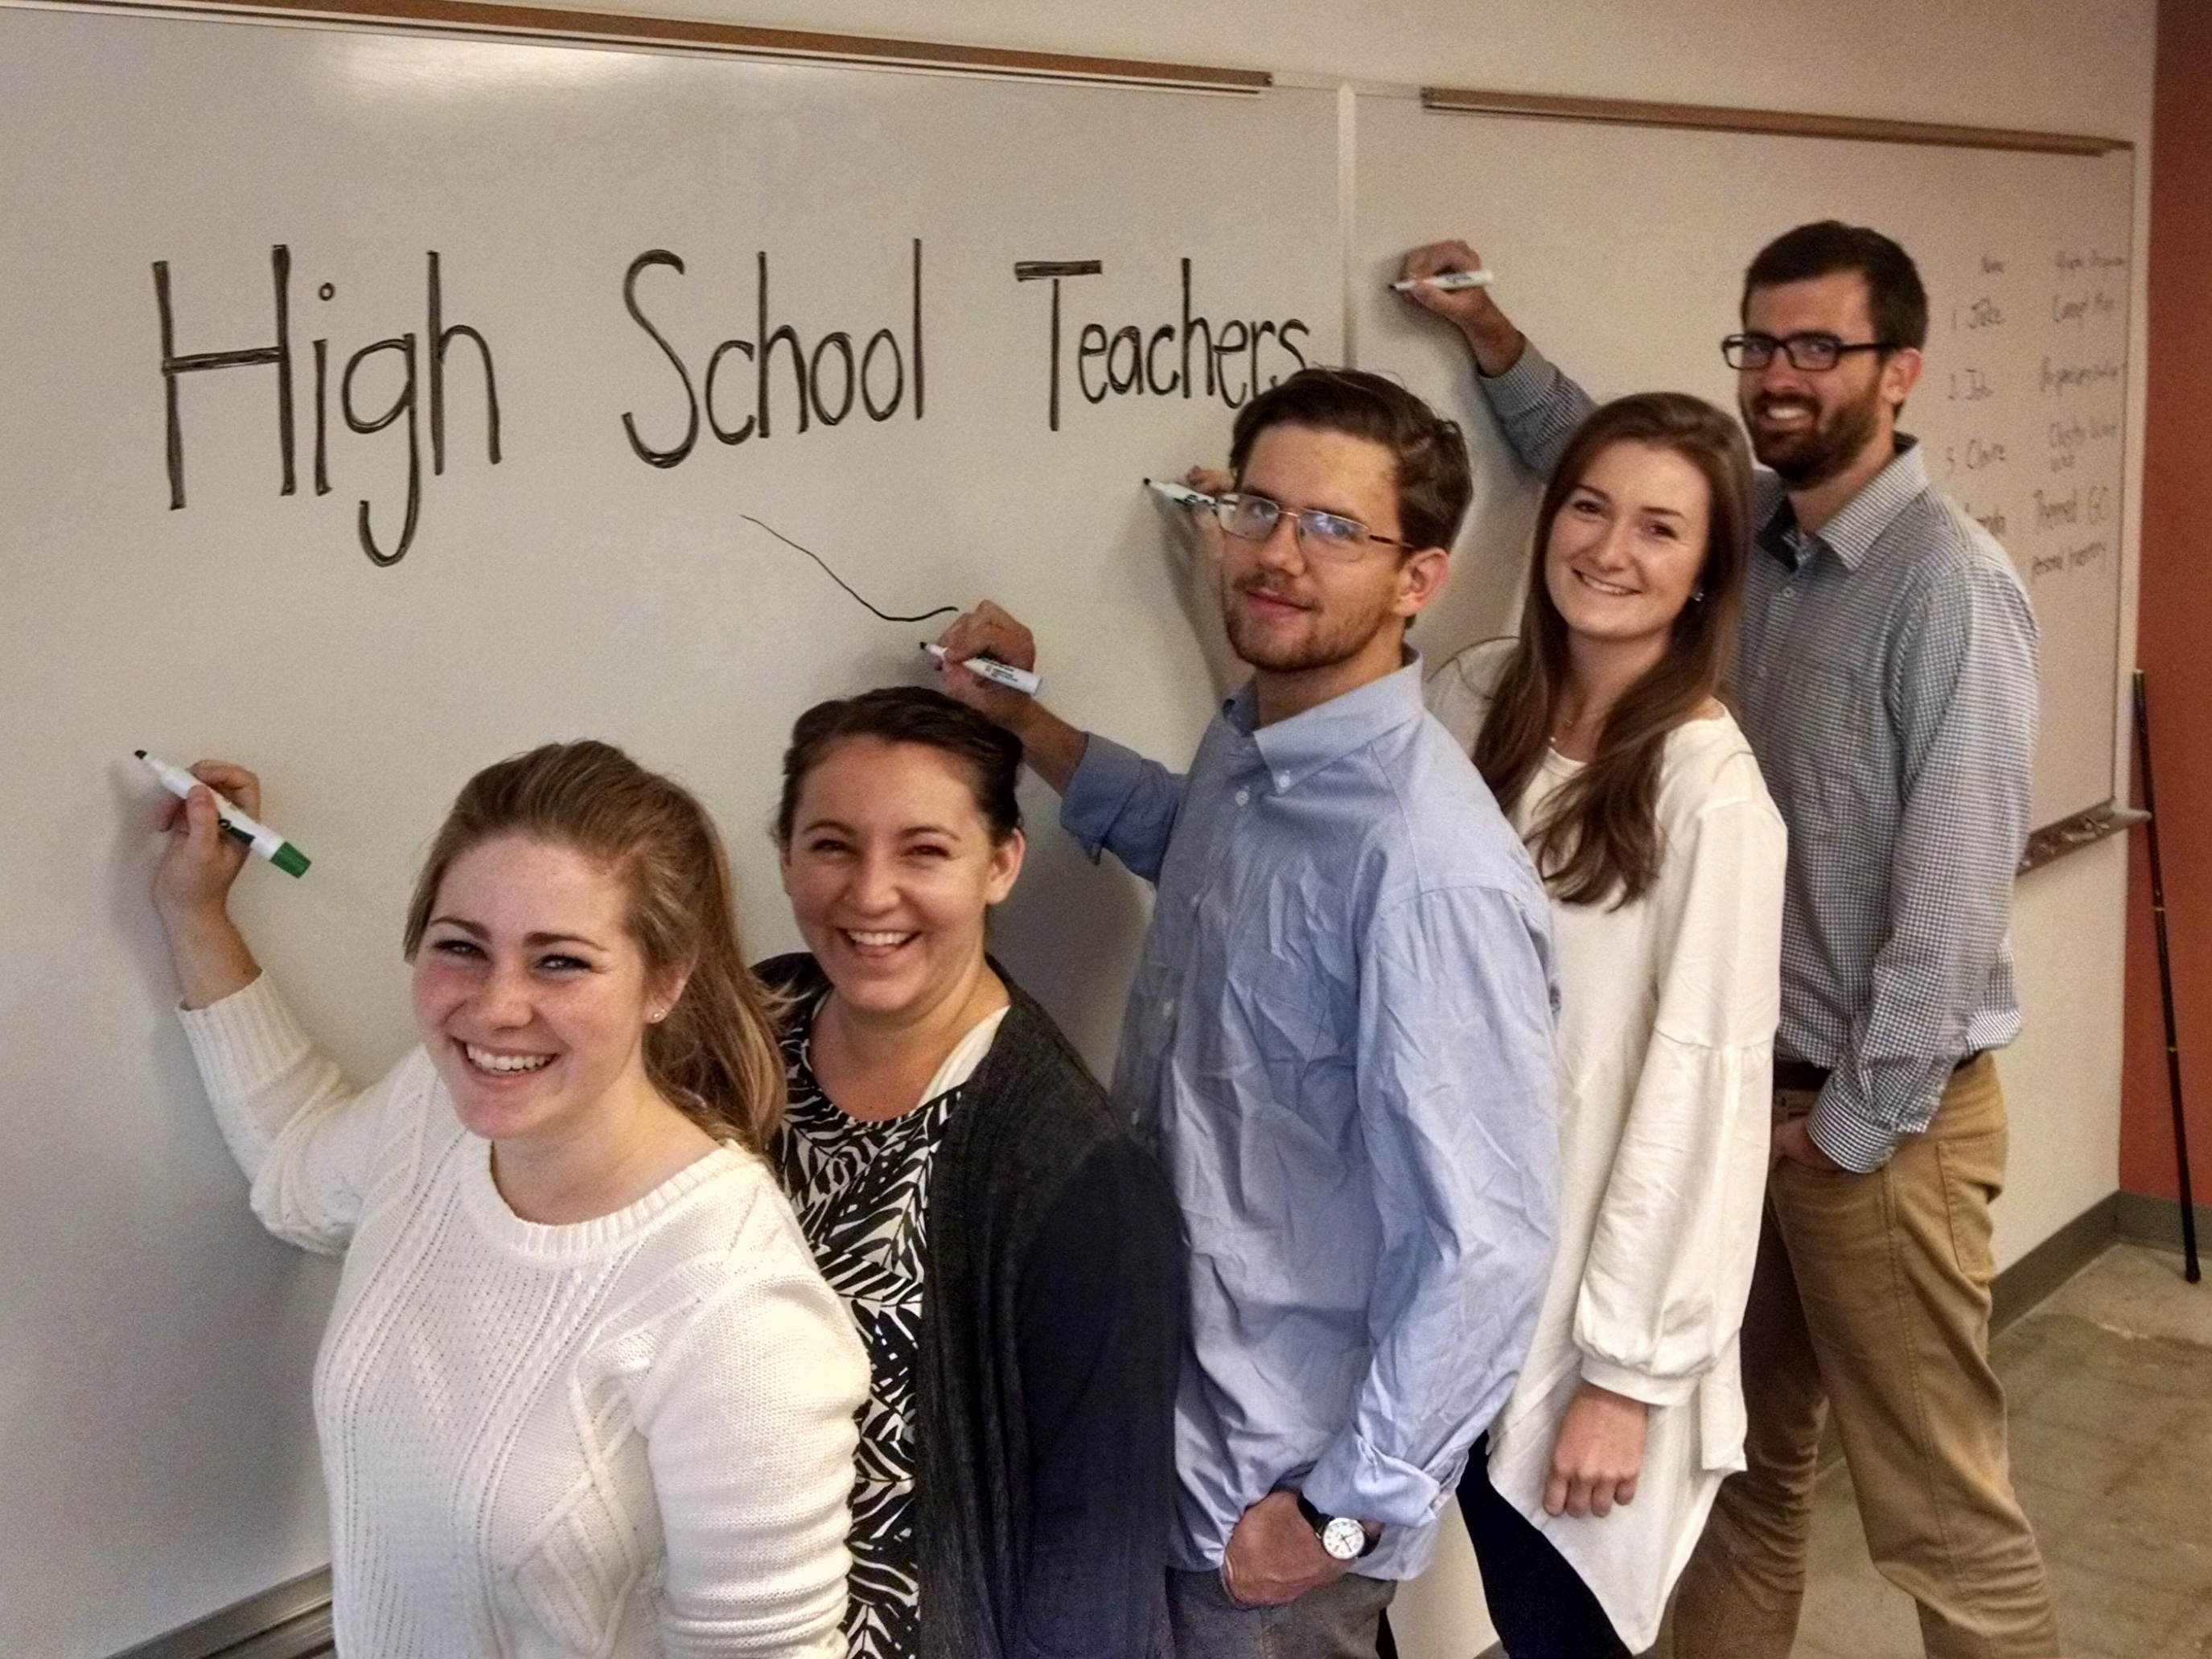 Aspiring High School Teachers